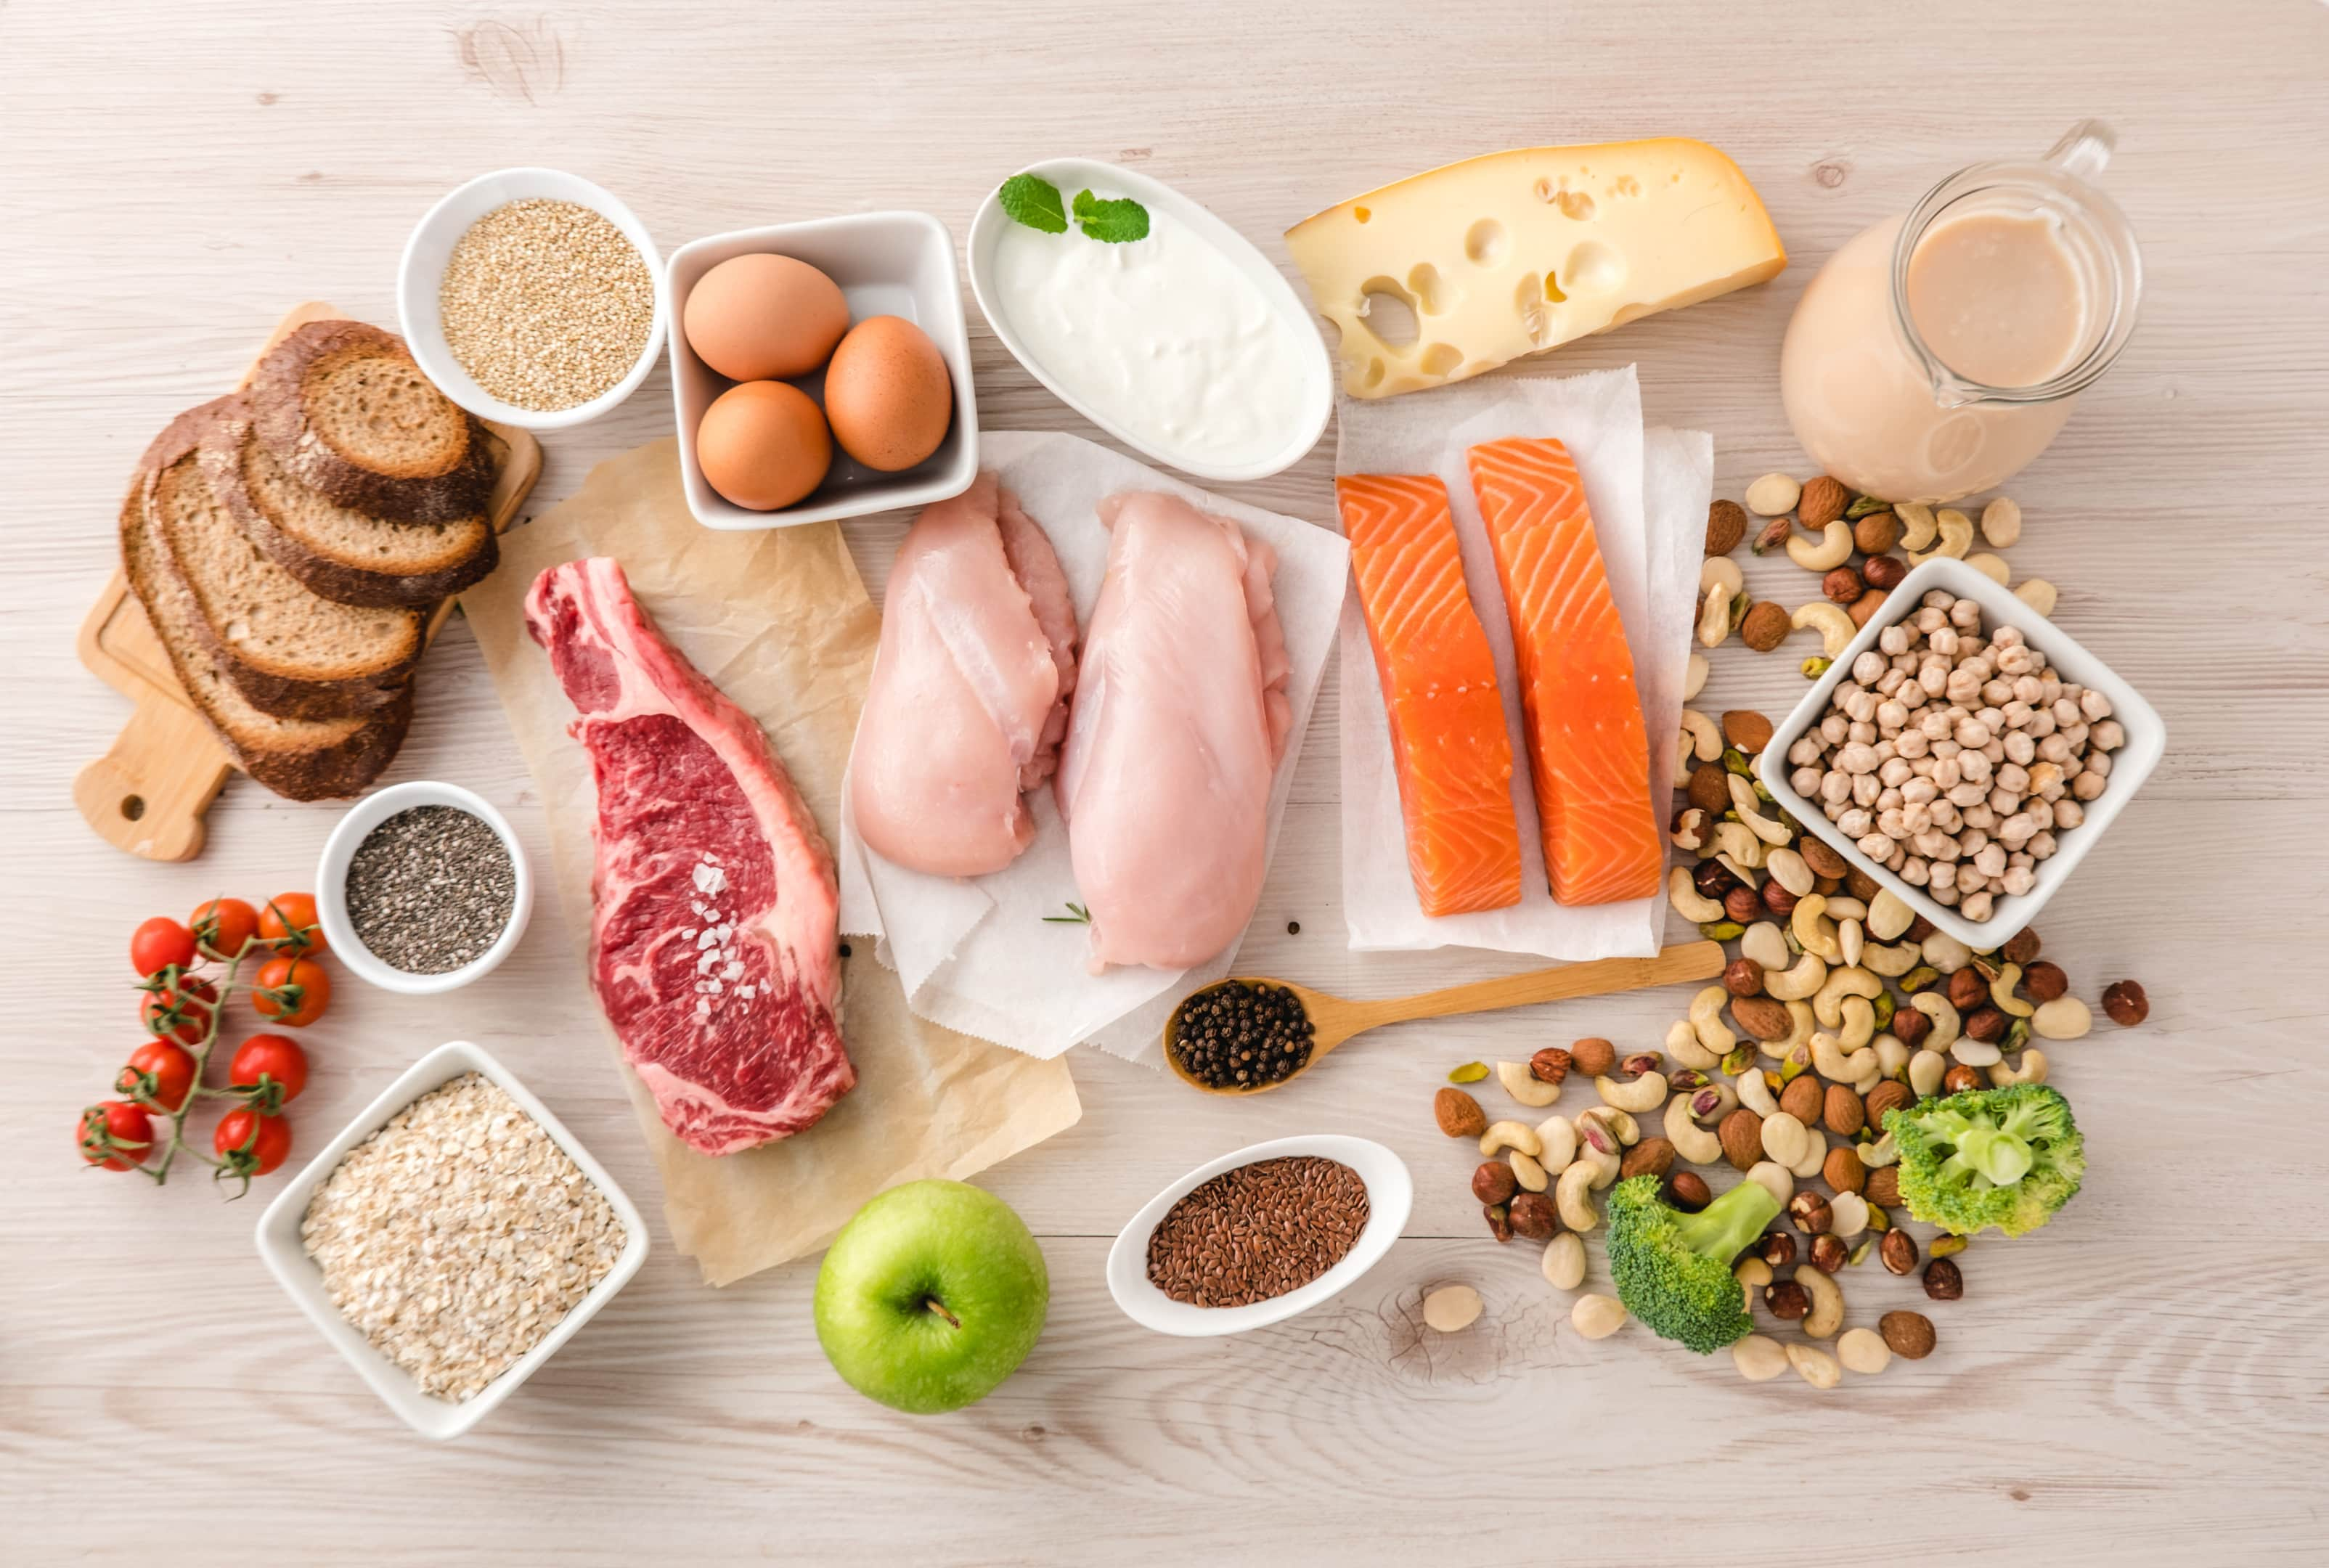 Healthy foods that are high in protein content